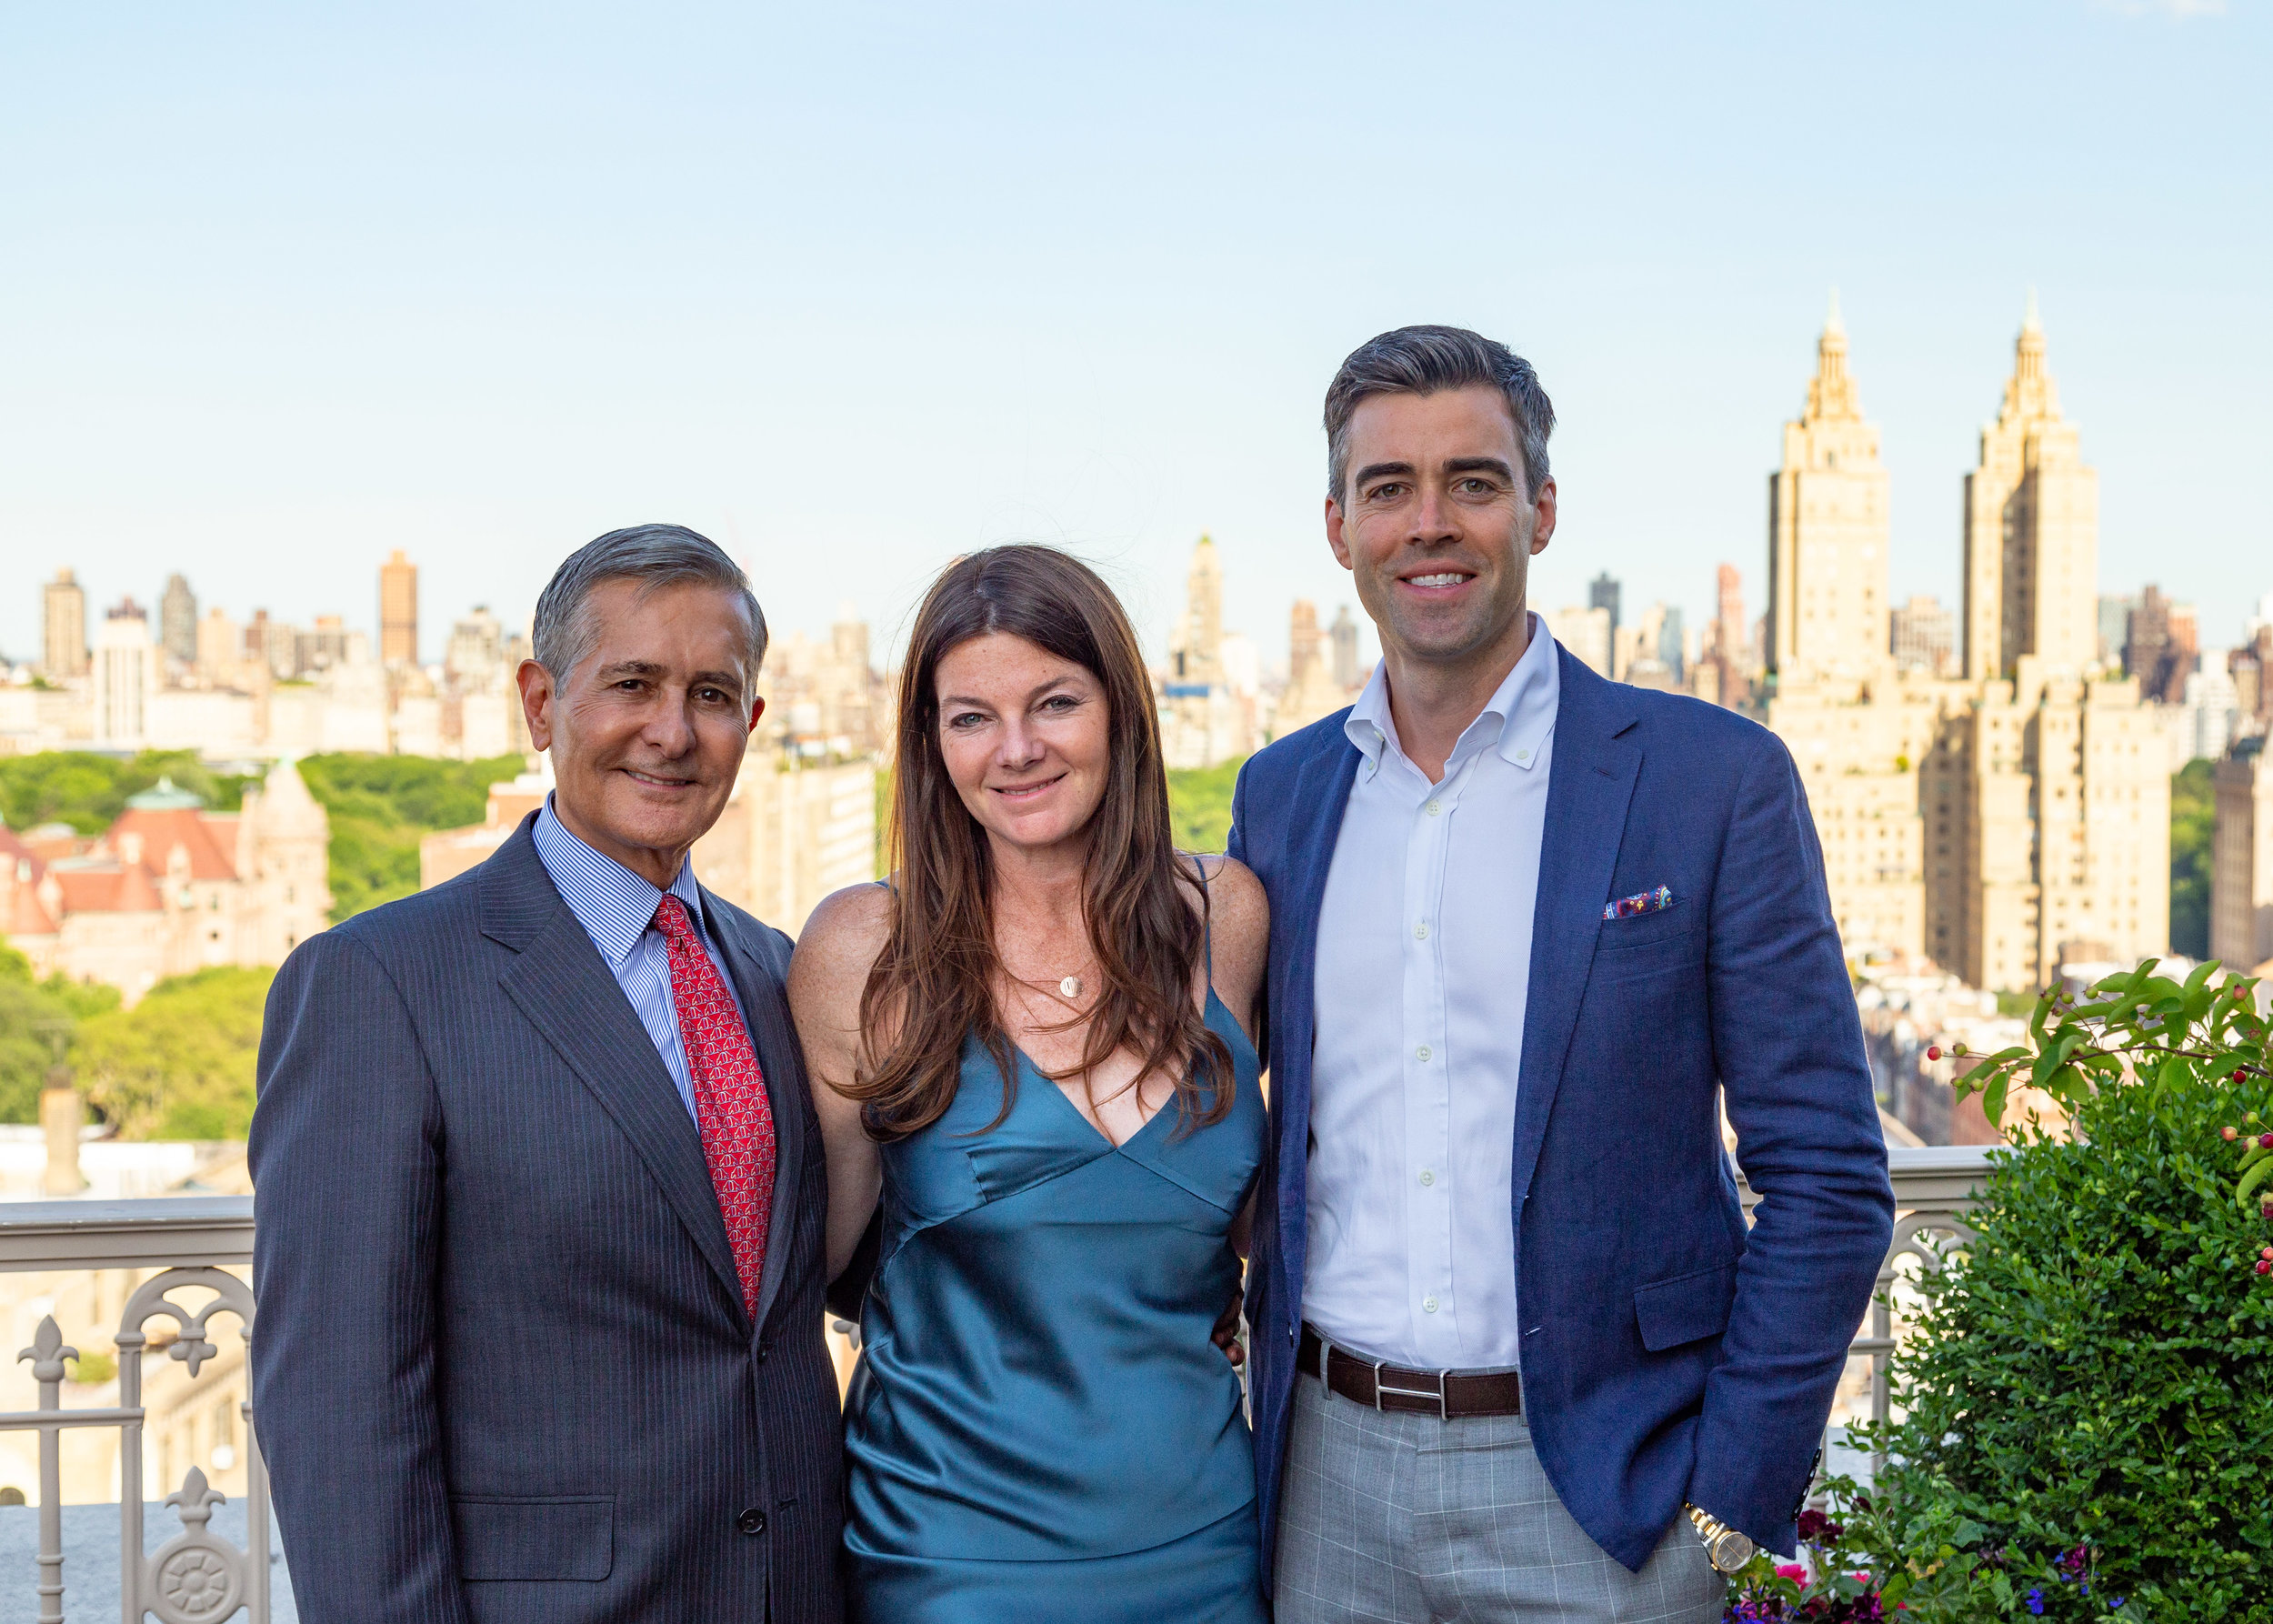 Roger Erickson, Jennifer Kalish and Noble Black of Douglas Elliman